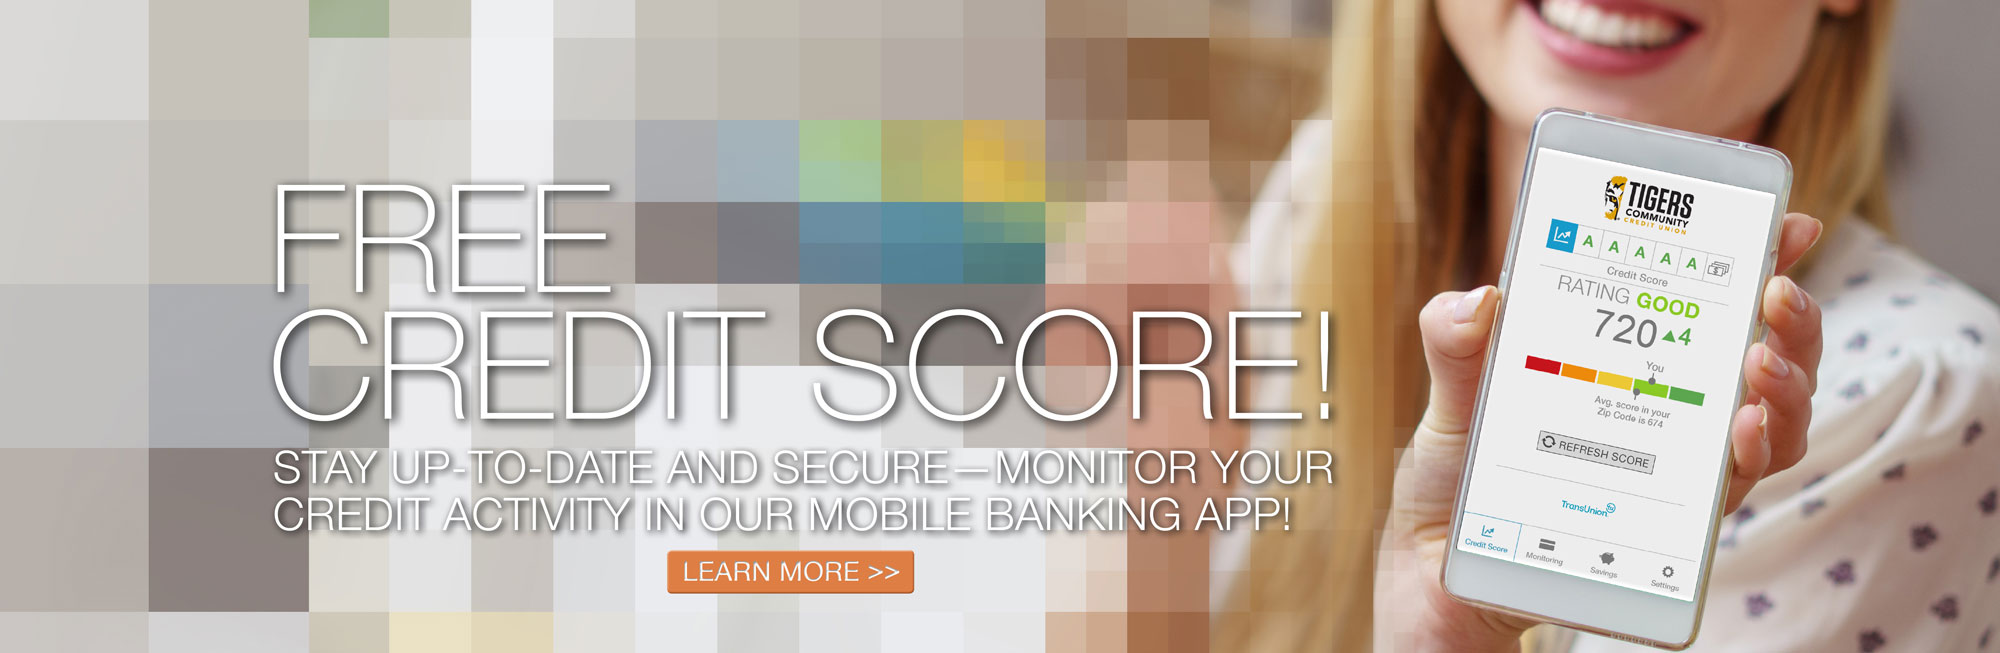 Mobile Banking with Free Credit Score! Stay up-to-date and Secure! Monitor your credit activity  in our Mobile Banking App!